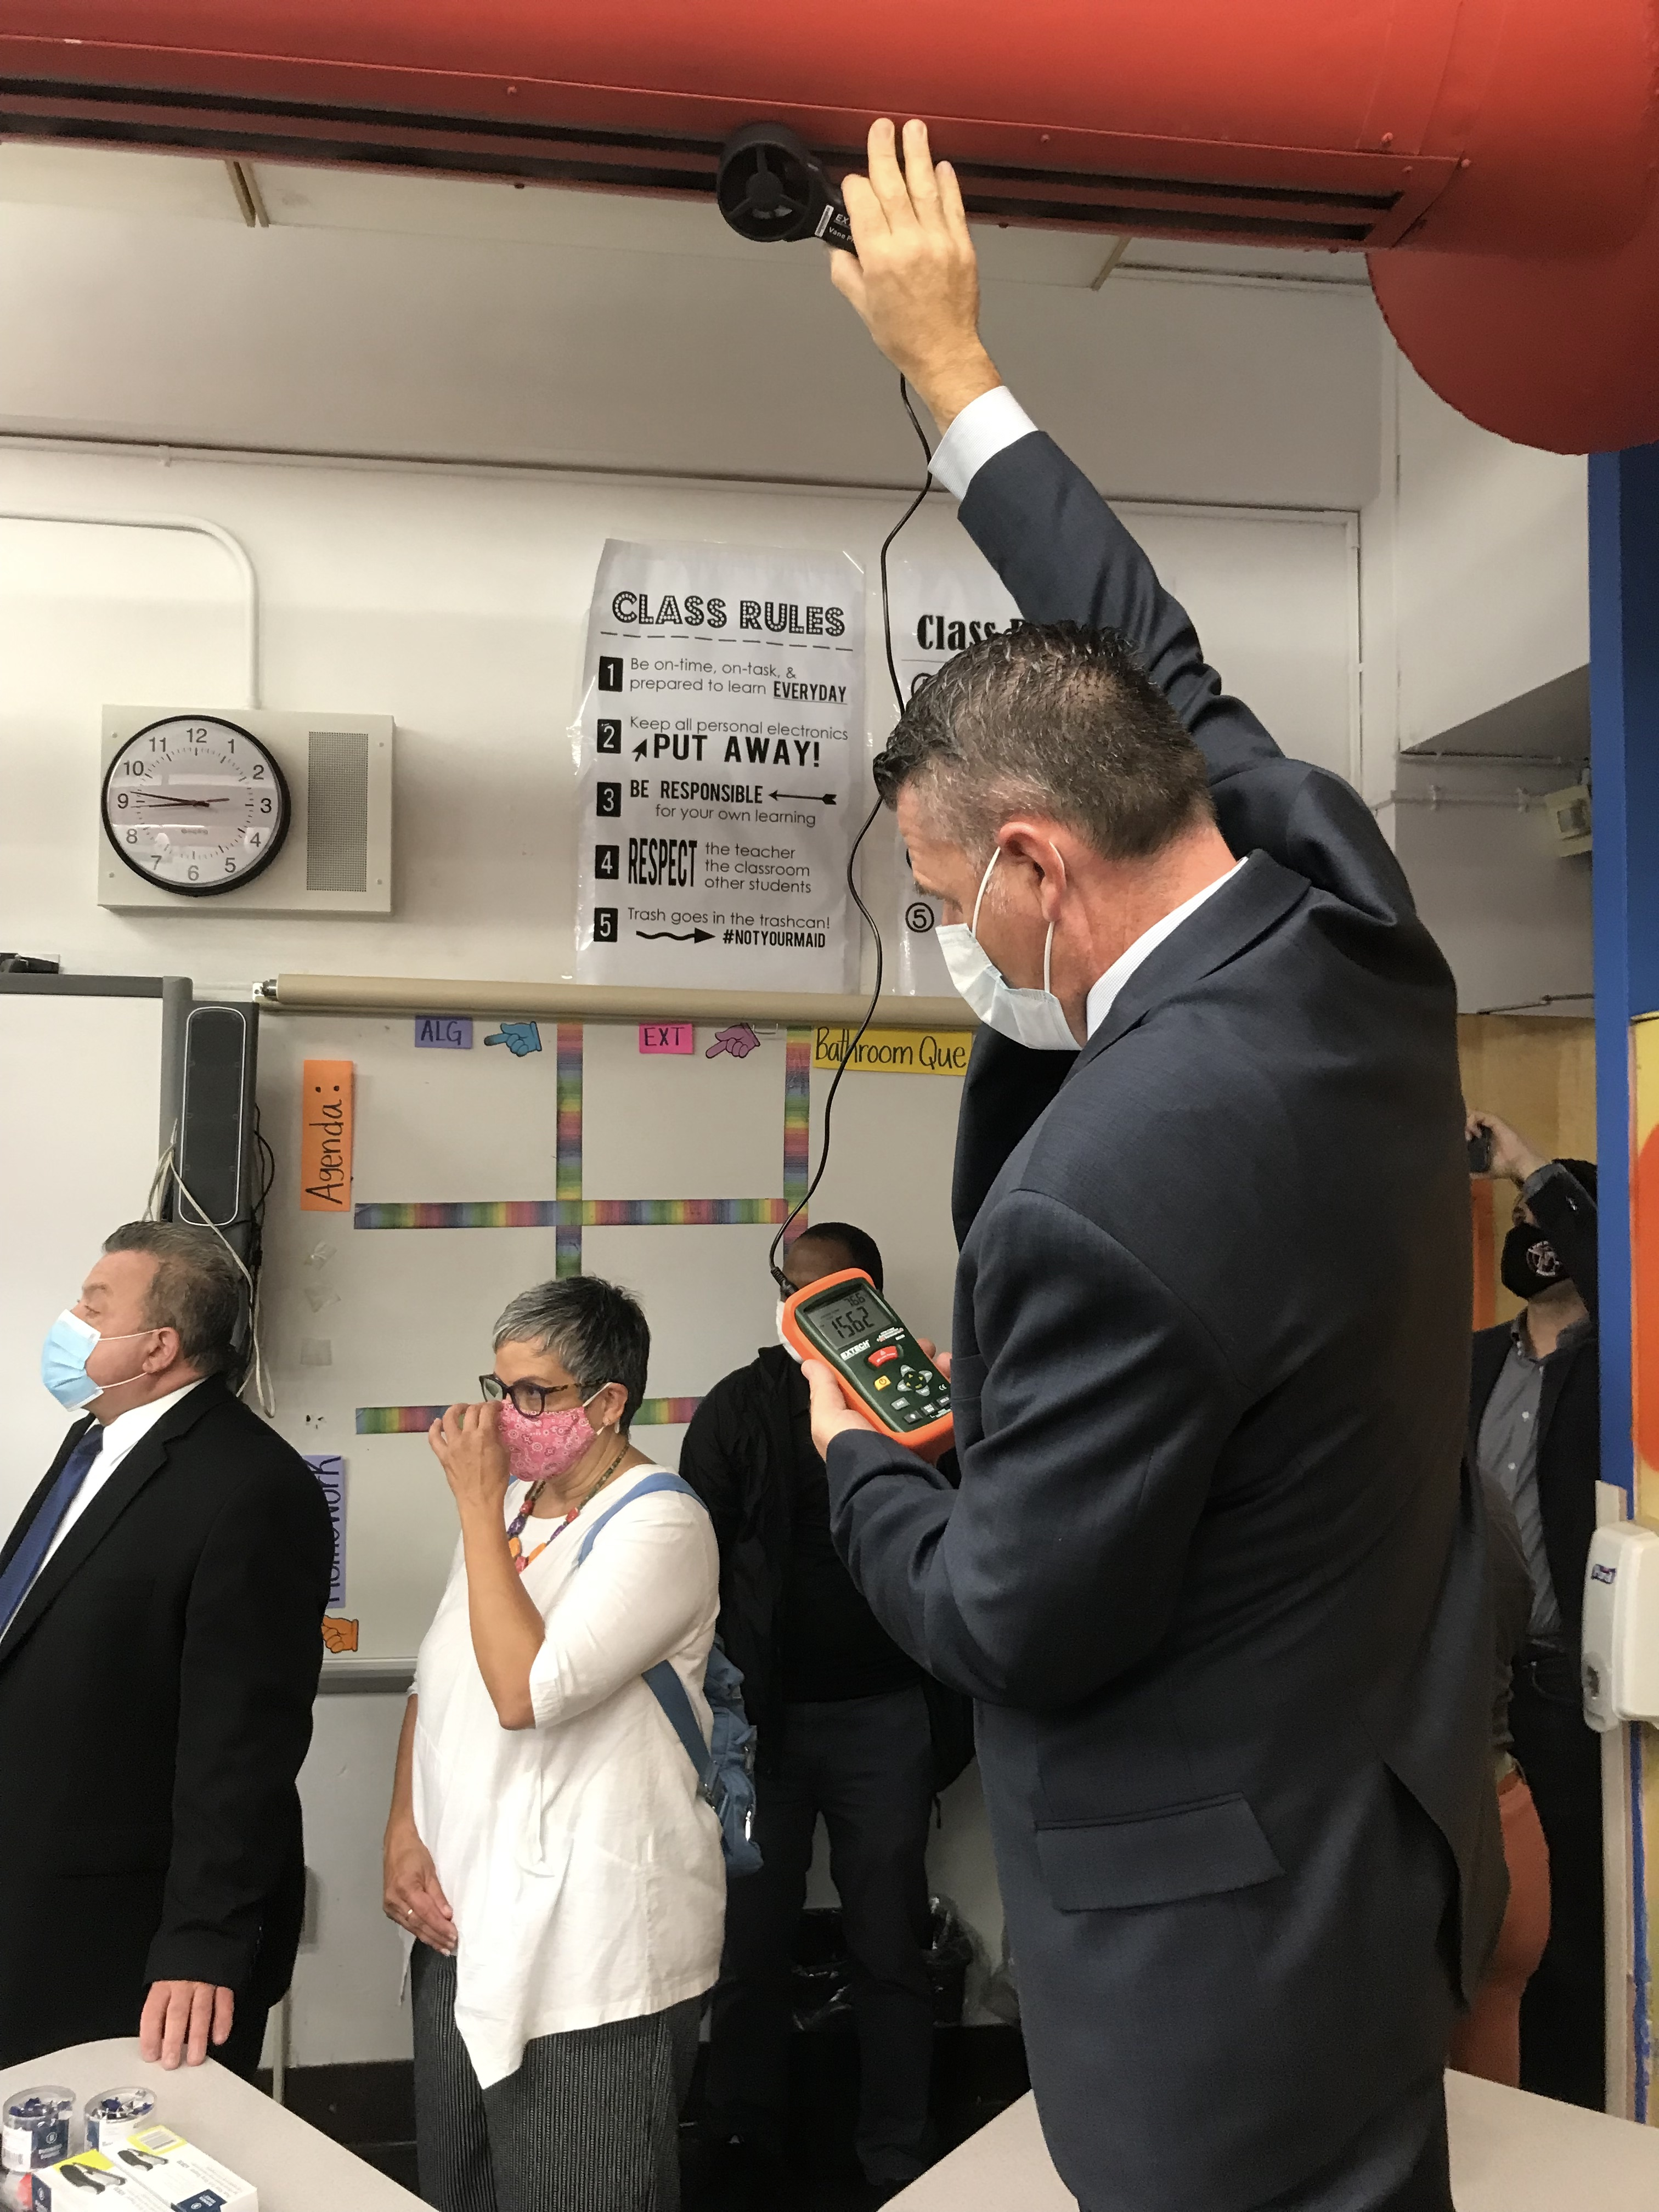 School custodian engineers will use handheld devices called anemometers to measure air flow in classrooms.